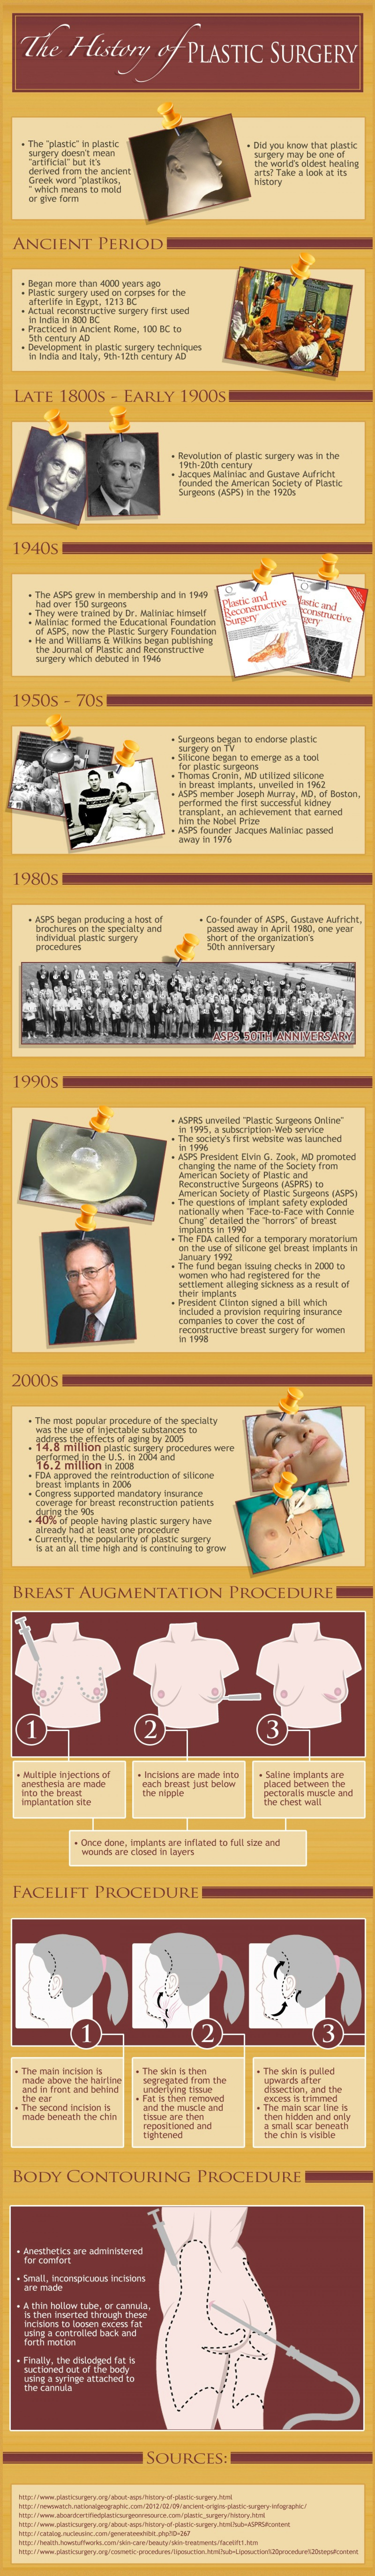 The History of Plastic Surgery Infographic